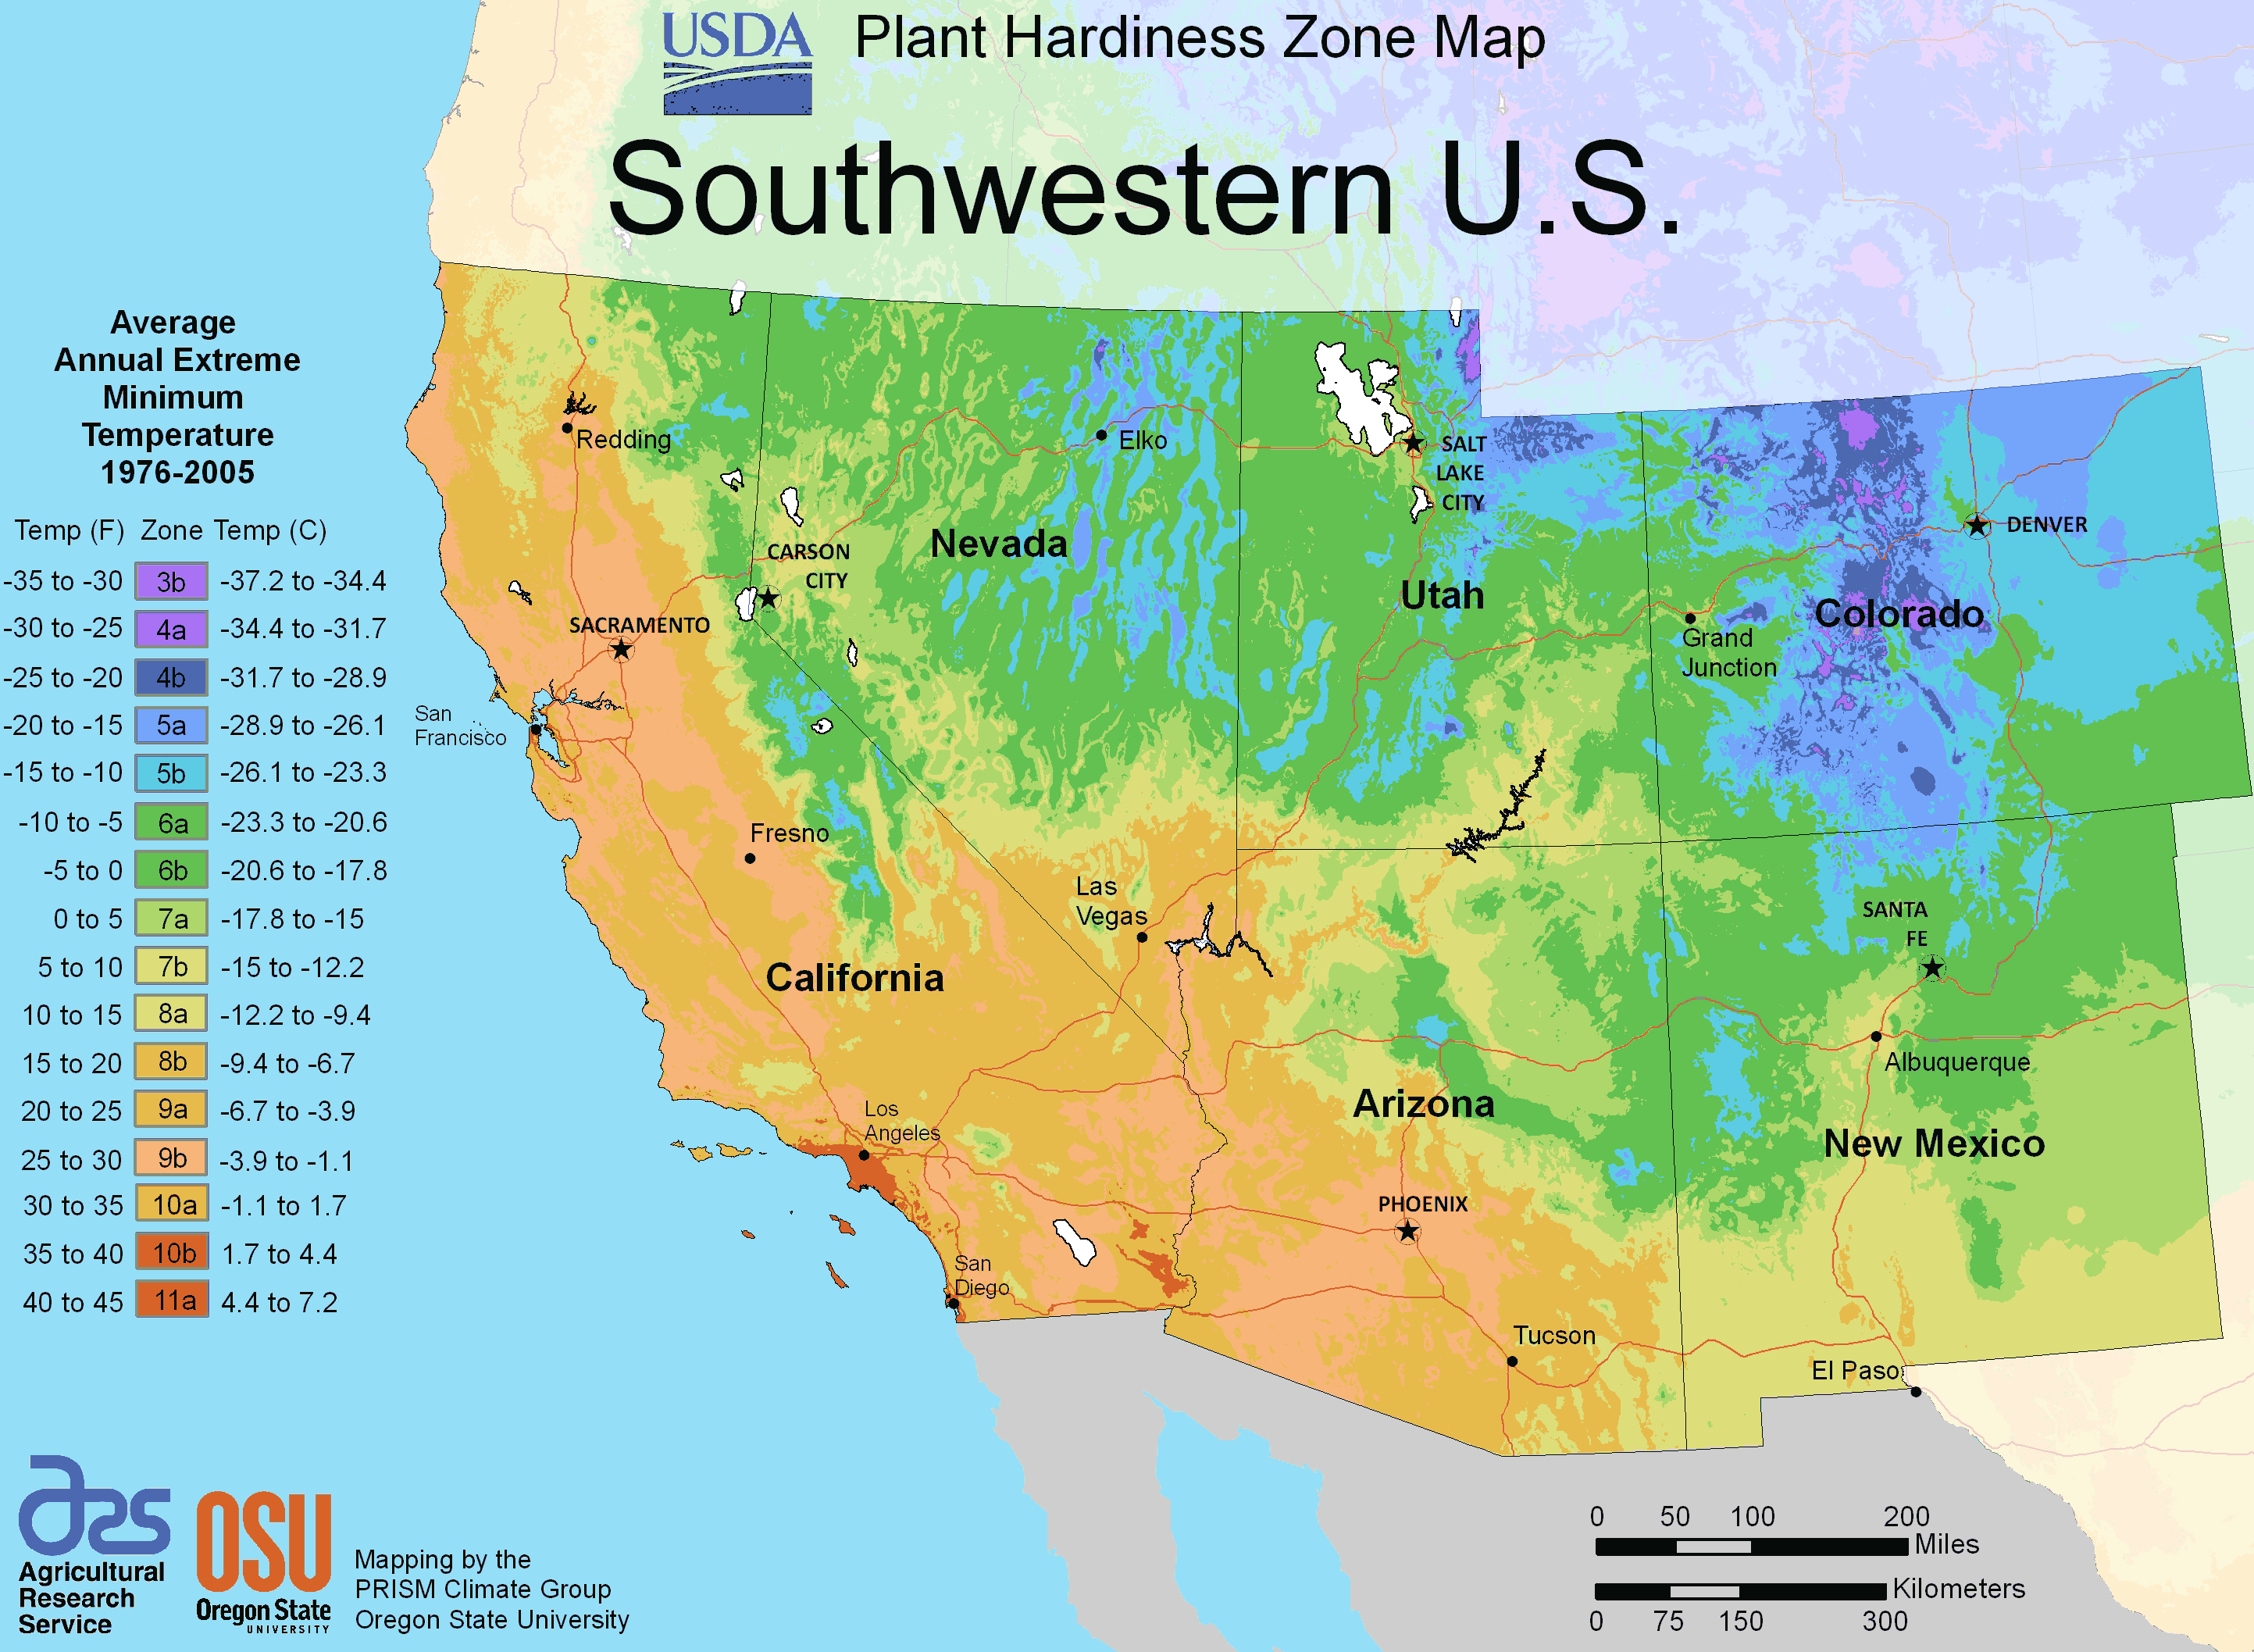 South West Us Plant Hardiness Zone Map